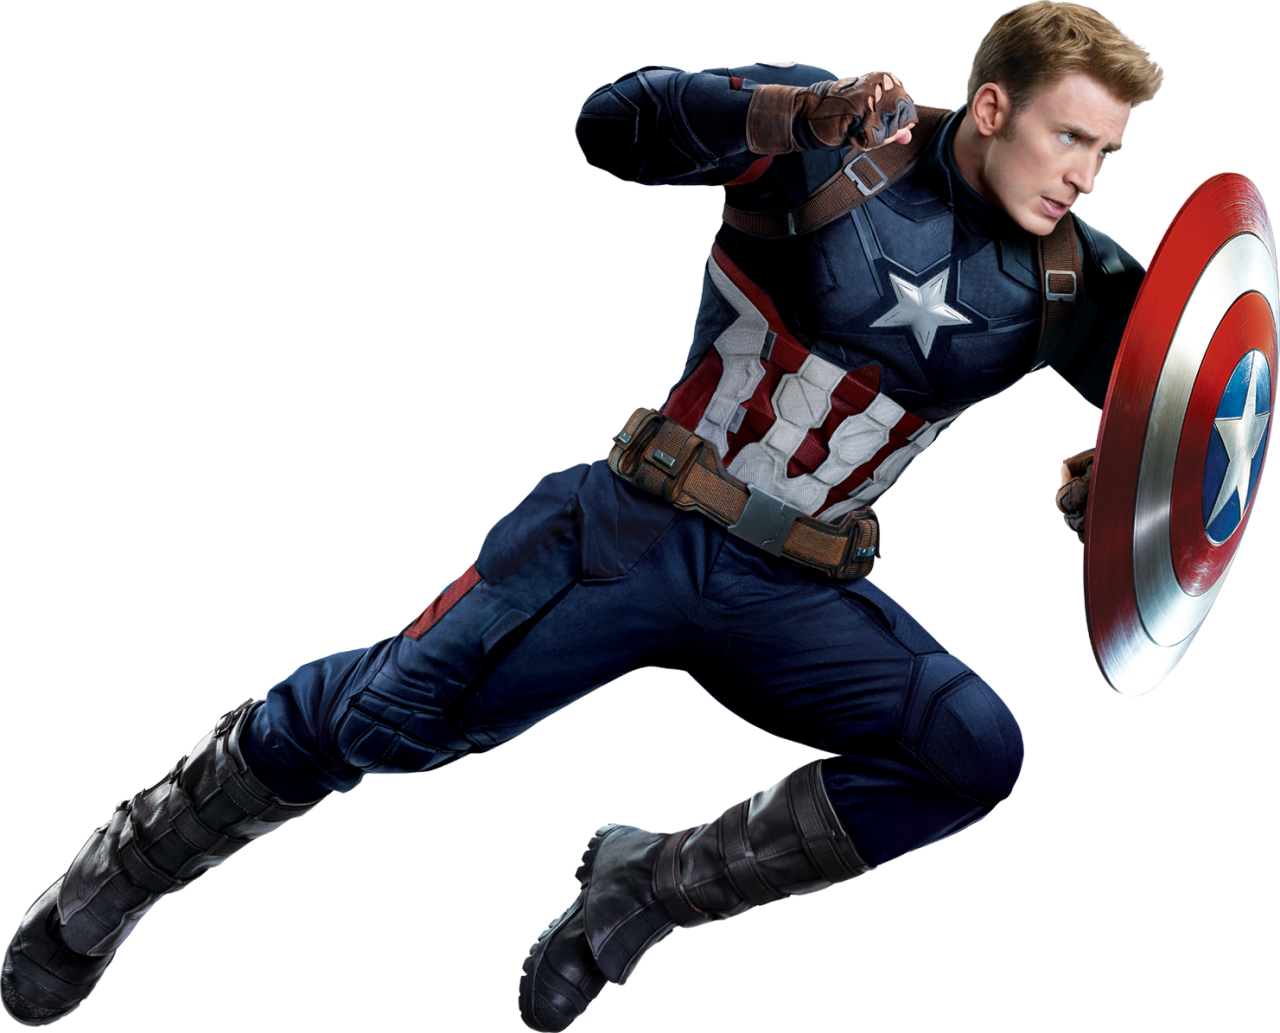 Here S Our Best Look At The Heroes Of Captain America Civil War In New Full Body Images Captain America Captain America Costume Captain America Civil War